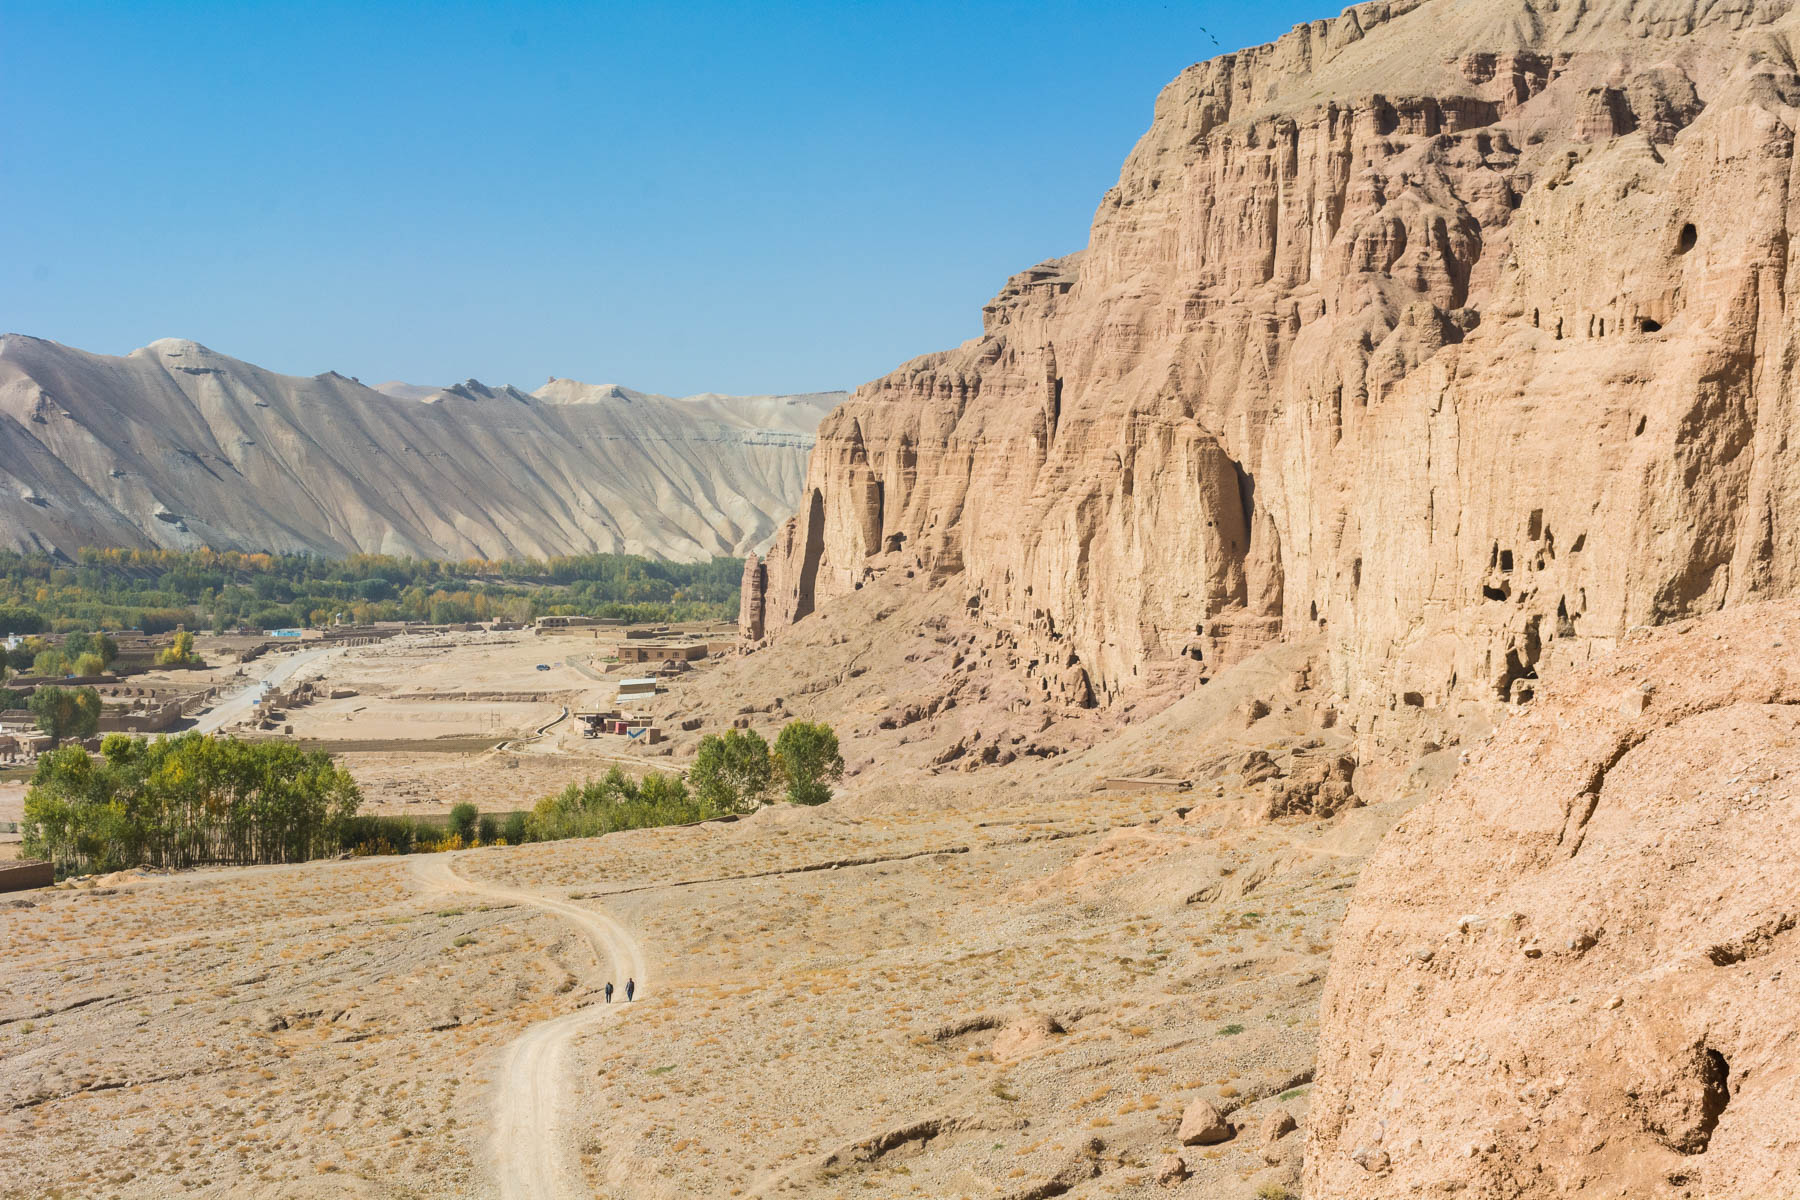 The buddhas of Bamiyan, Afghanistan - Lost With Purpose